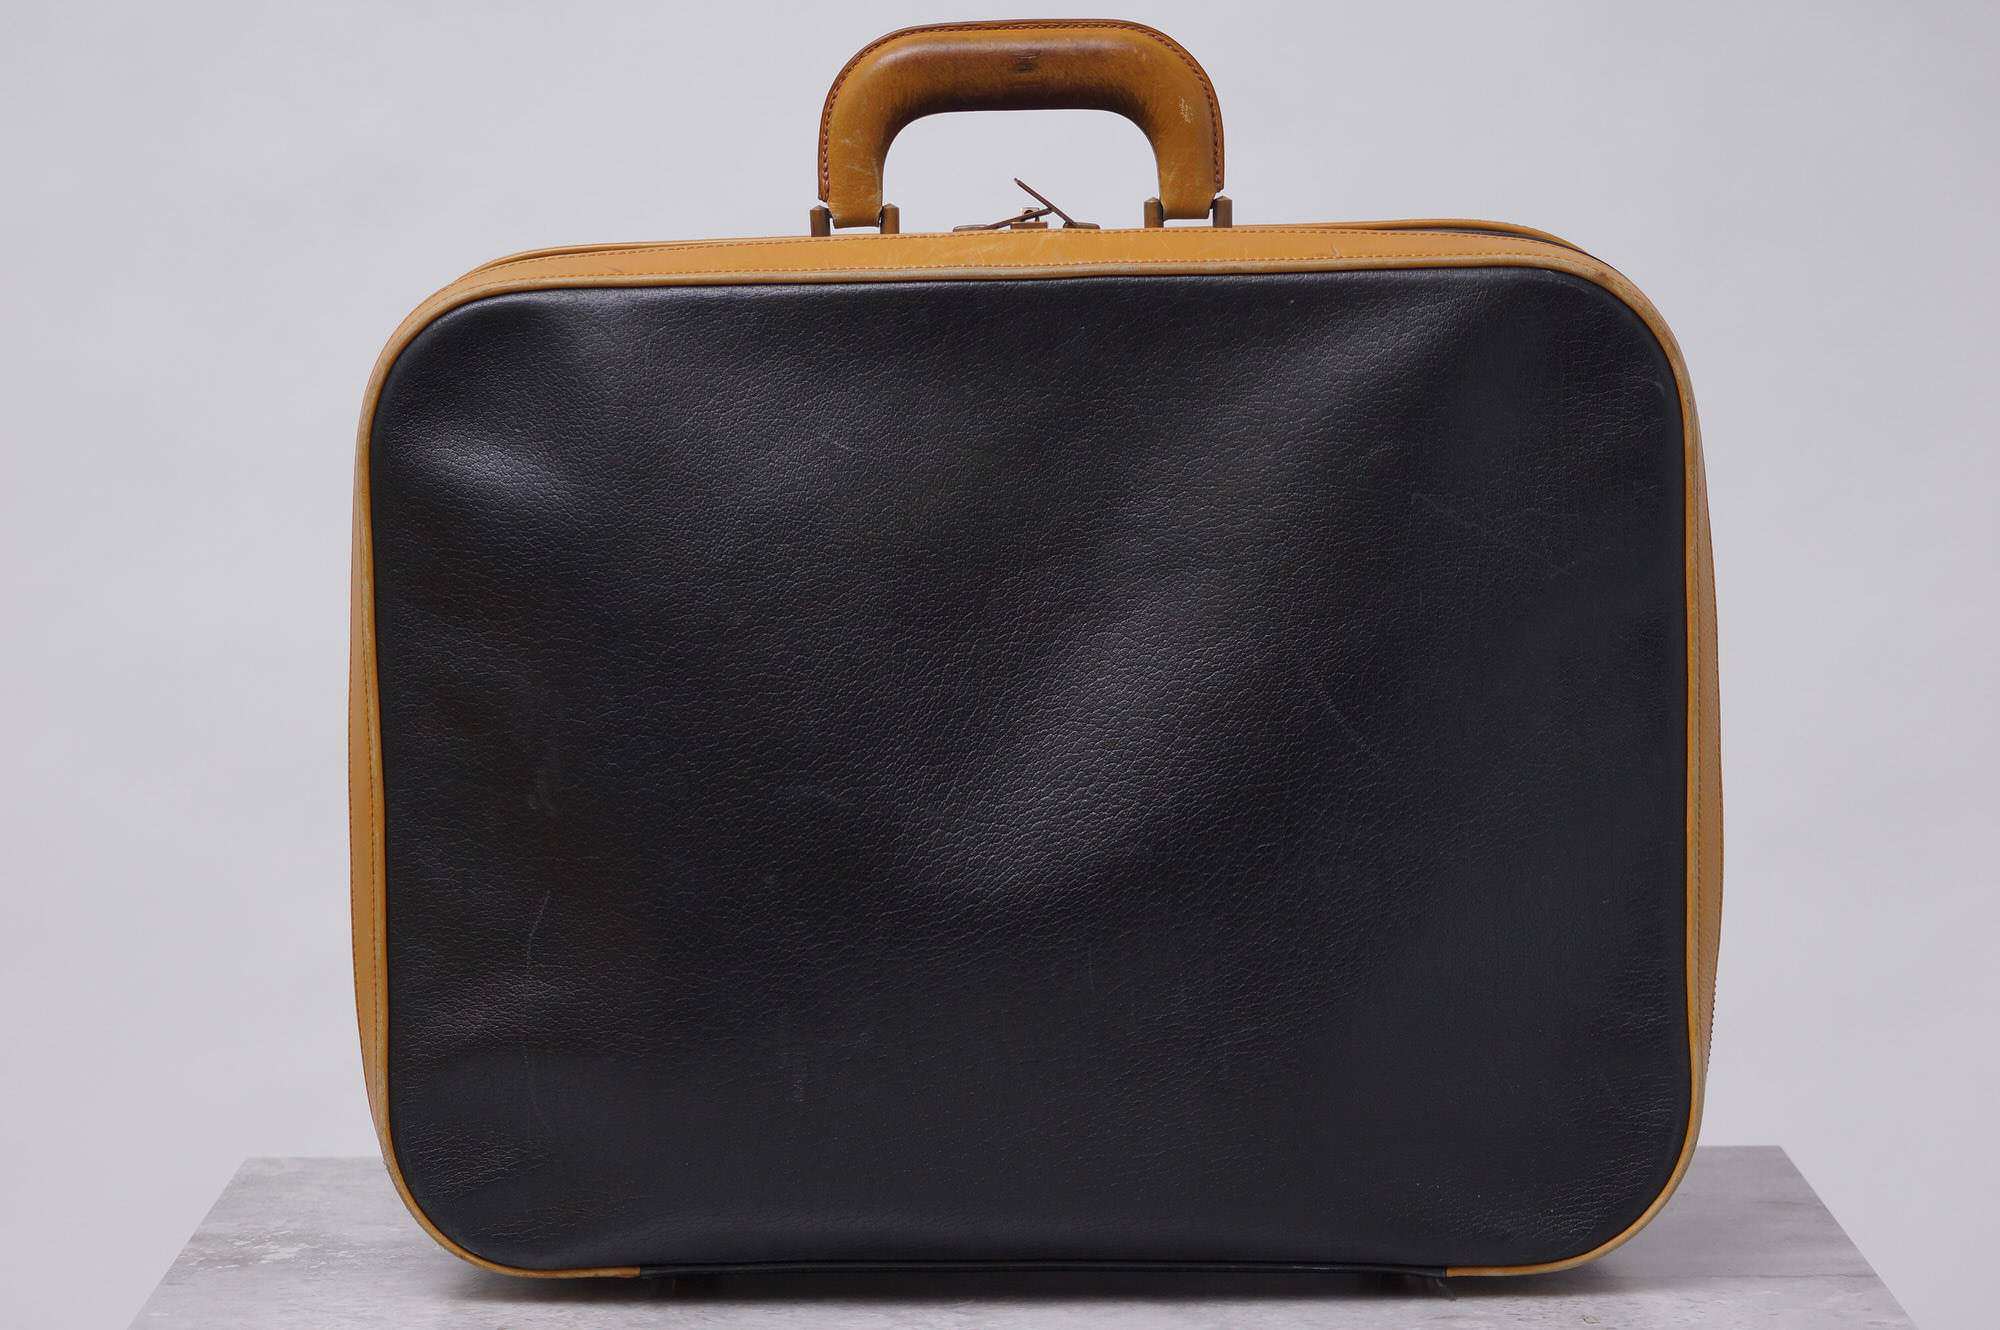 HERMES Hermes business bag briefcase . trunk attache case France made men s  leather leather b8947 e8989c9a6544b